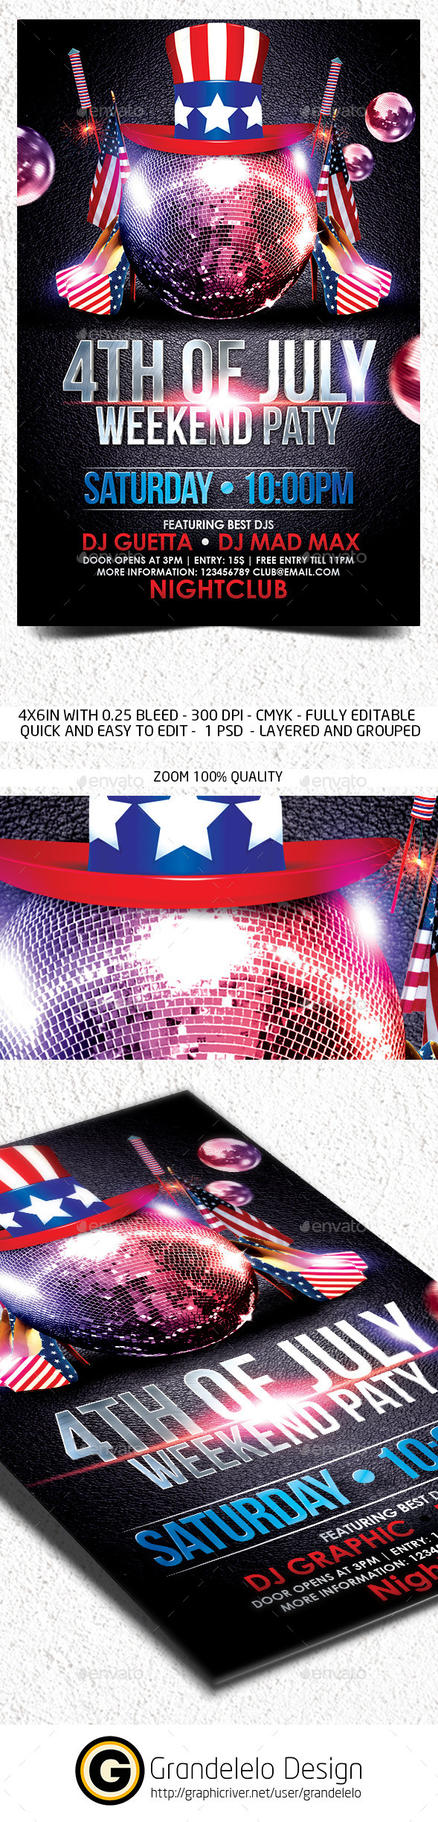 4th July Weekend Flyer Template by Grandelelo